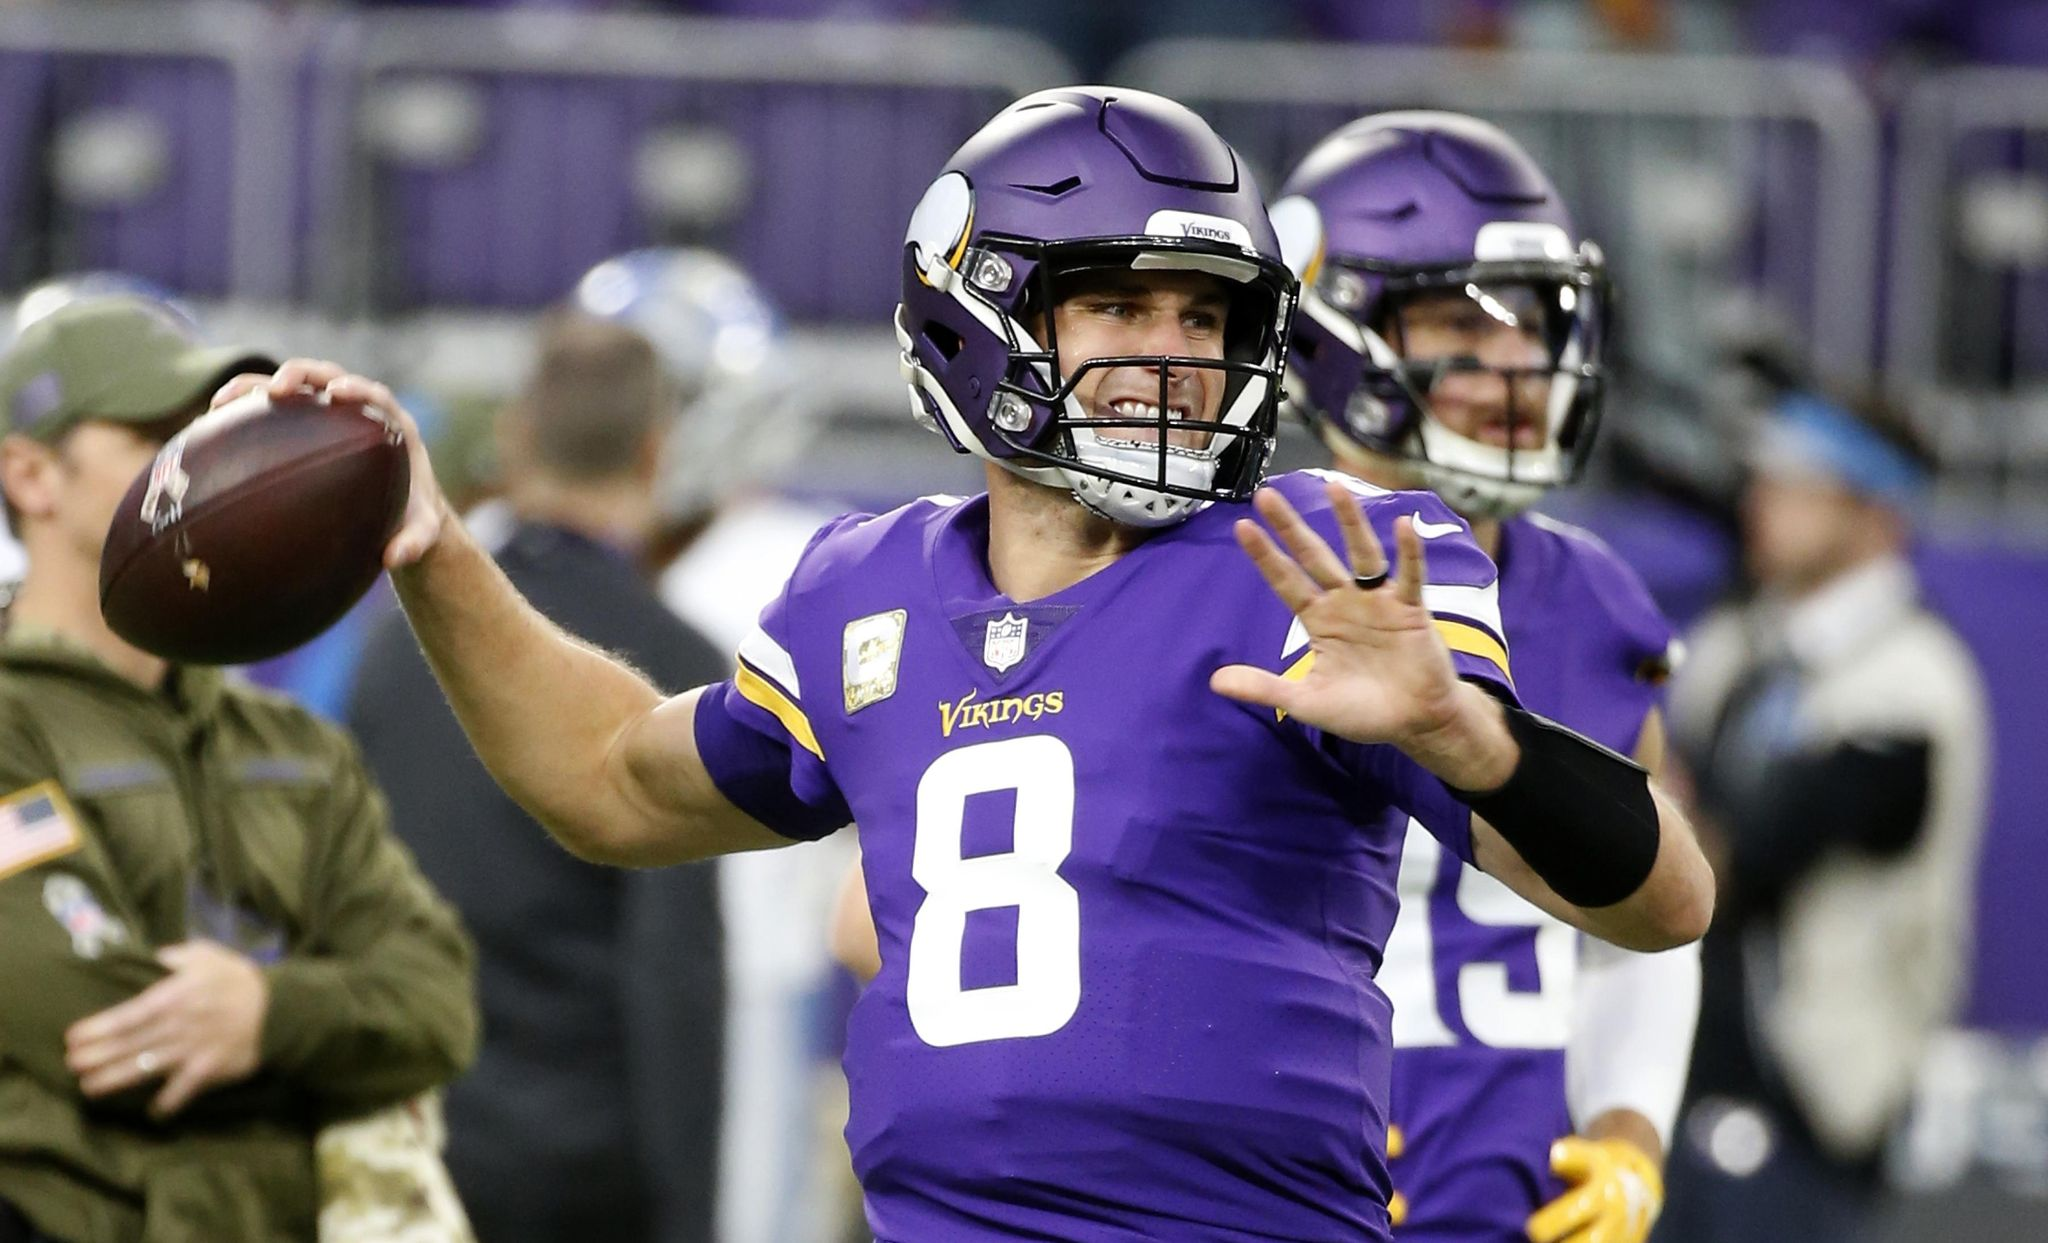 Kirk Cousins, Joe Flacco and more NFL players thank vets on Veterans Day